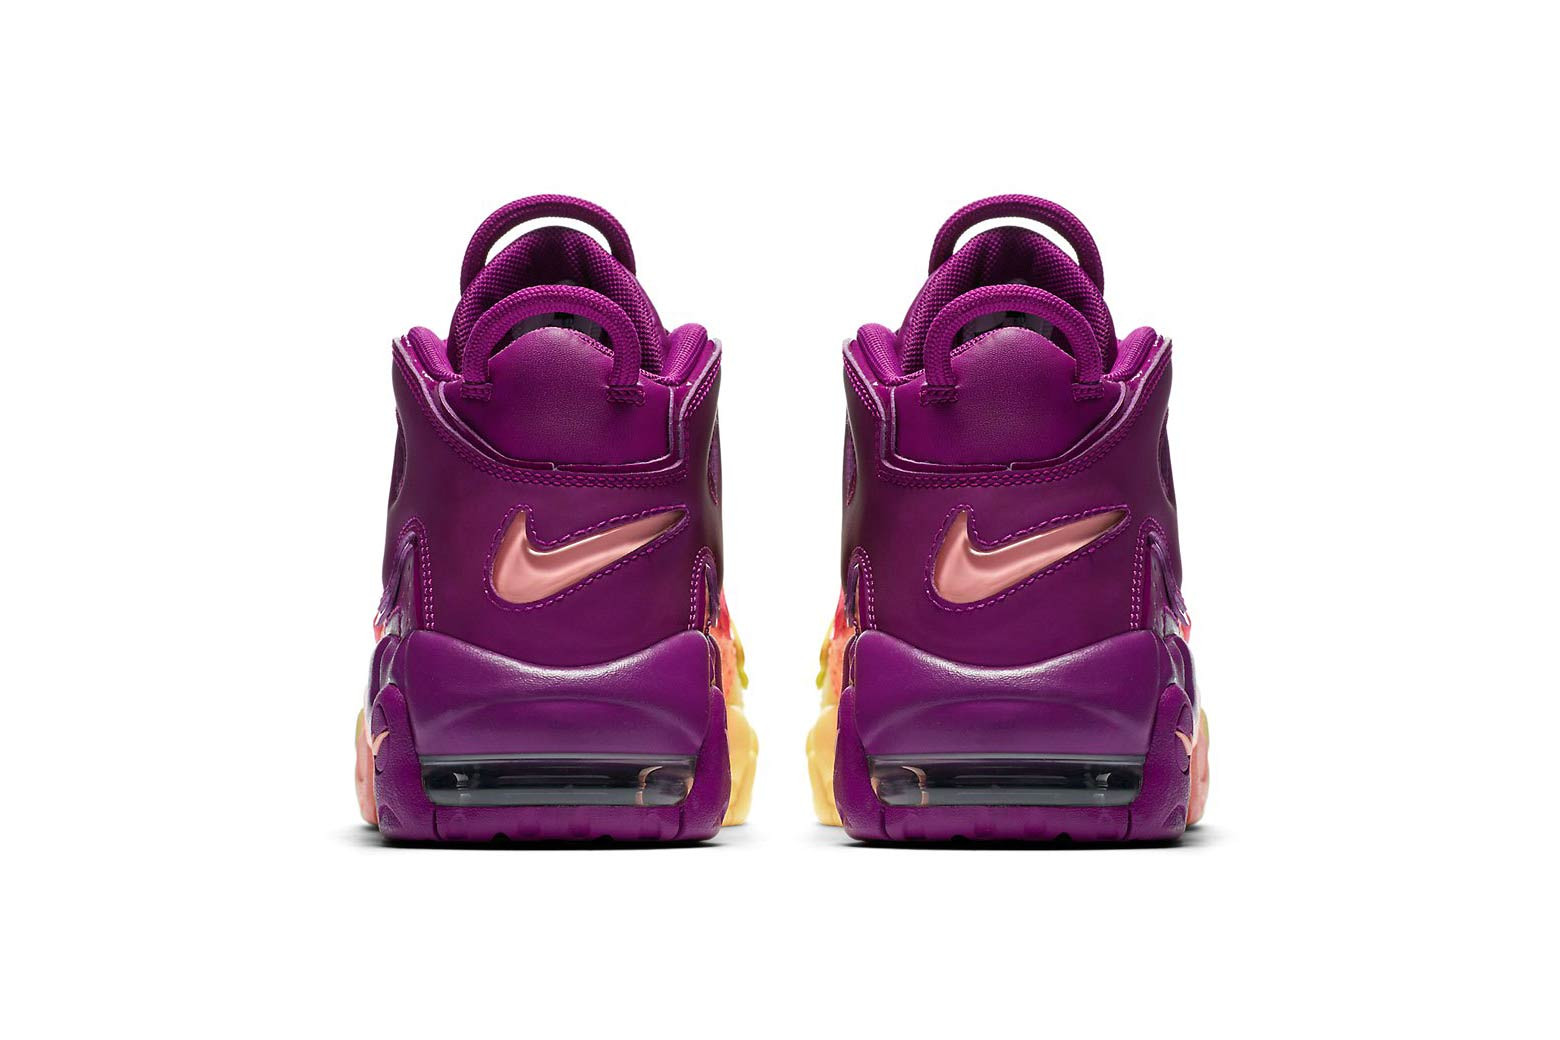 Nike Air More Uptempo in Pink, Purple